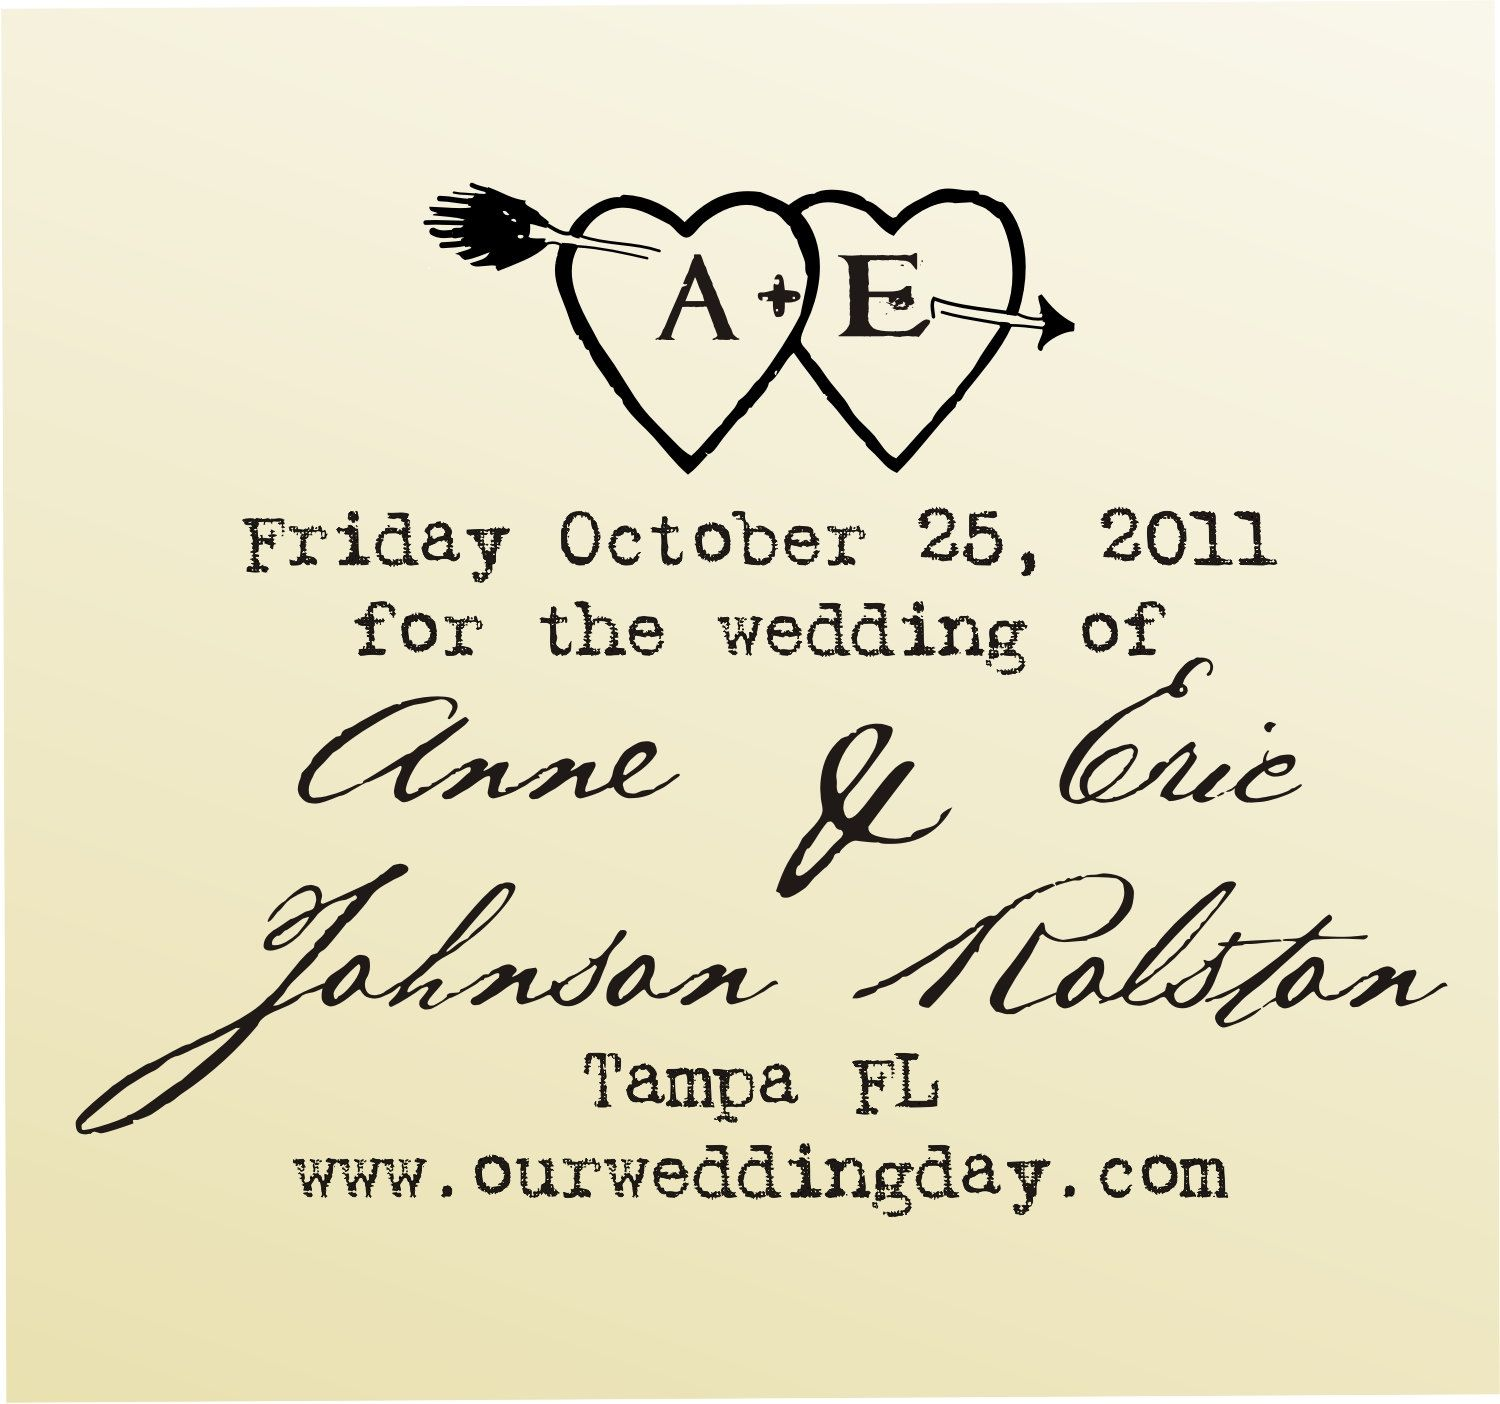 Save The Date Heart With Initials Etched Inside Typewriter Font Rubber Stamp Clear Blo Custom Wedding Stationary Wedding Stationary Save The Date Inspiration